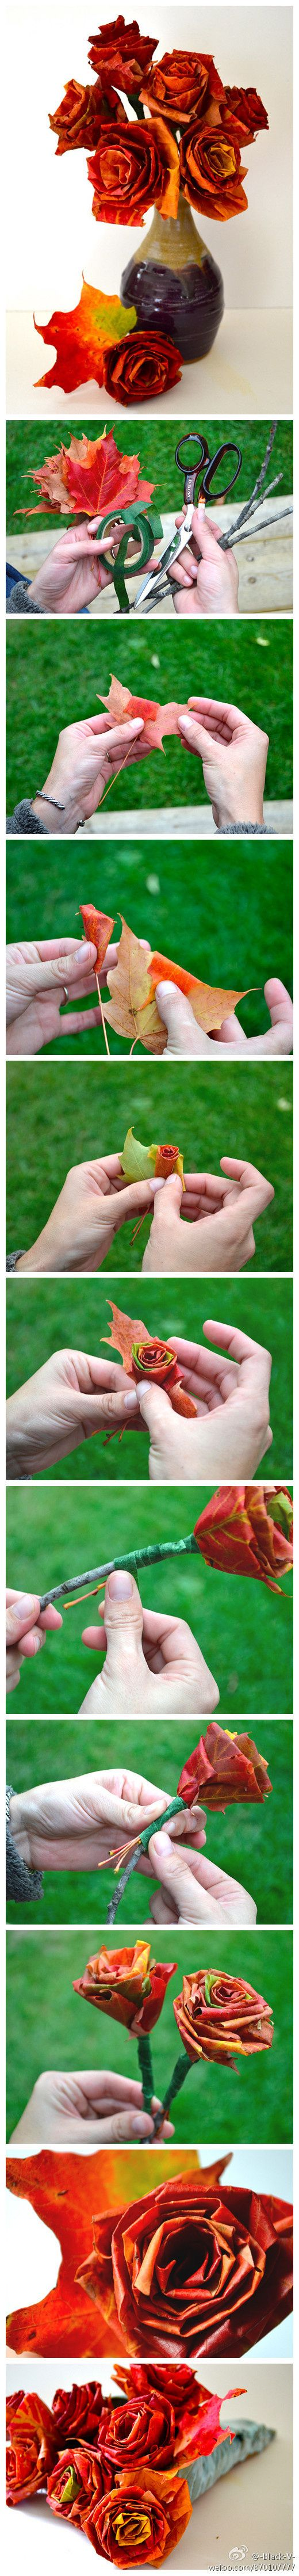 Make roses from fall leaves!Crafts Ideas, Fall Leaves, Fall Table, Diy Crafts, Autumn Leaves, Paper Flower, Fall Flower, Leaf Rose, Fall Wedding